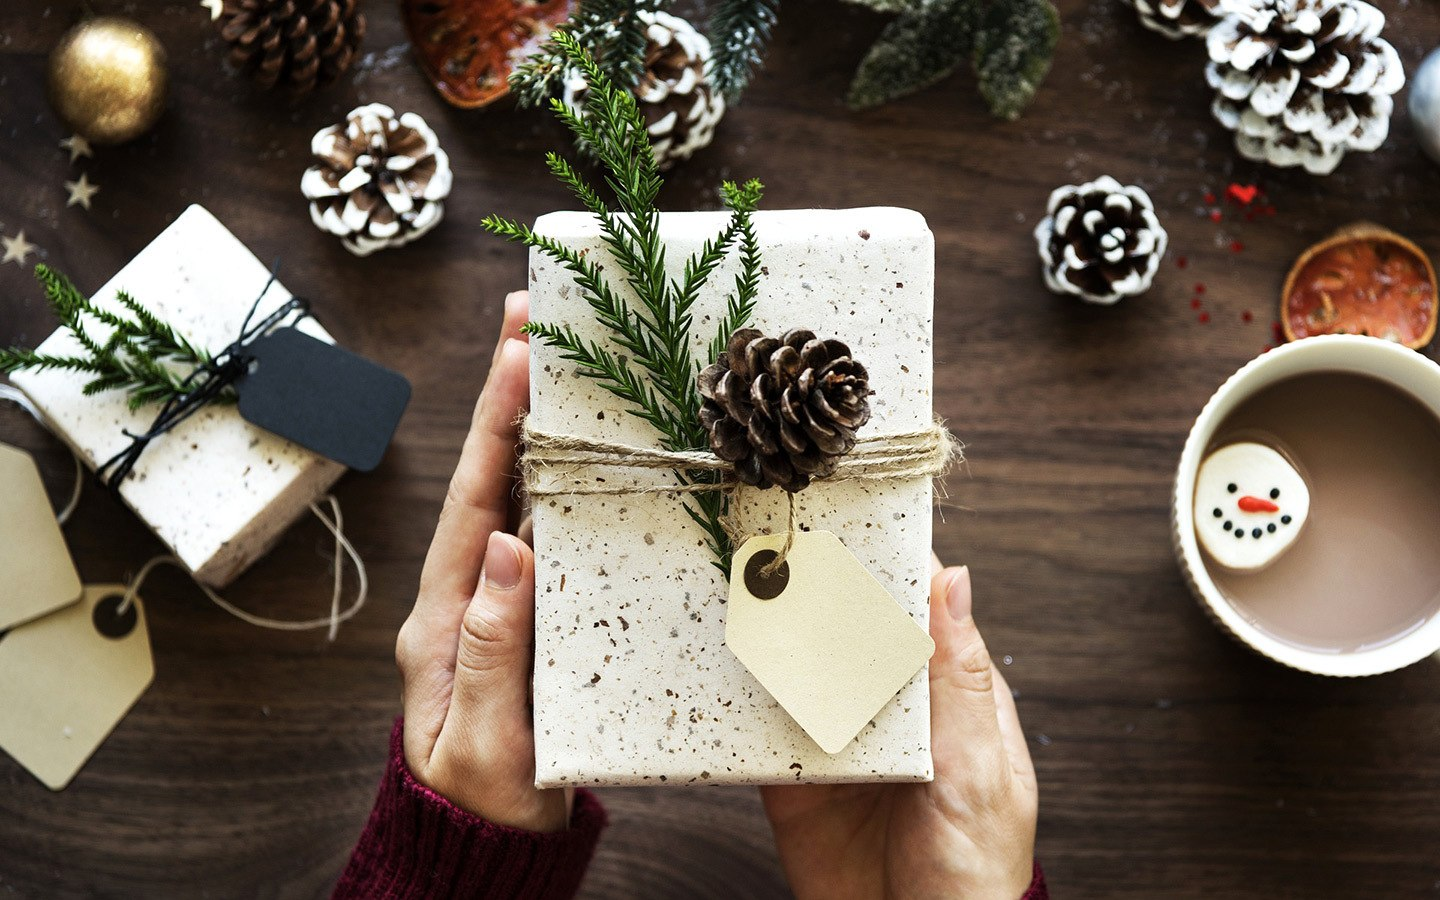 Over 20 affordable Christmas gifts for travel lovers in 2019, featuring sustainable travel kit, packing tools, home decor and wanderlust-inspiring books.